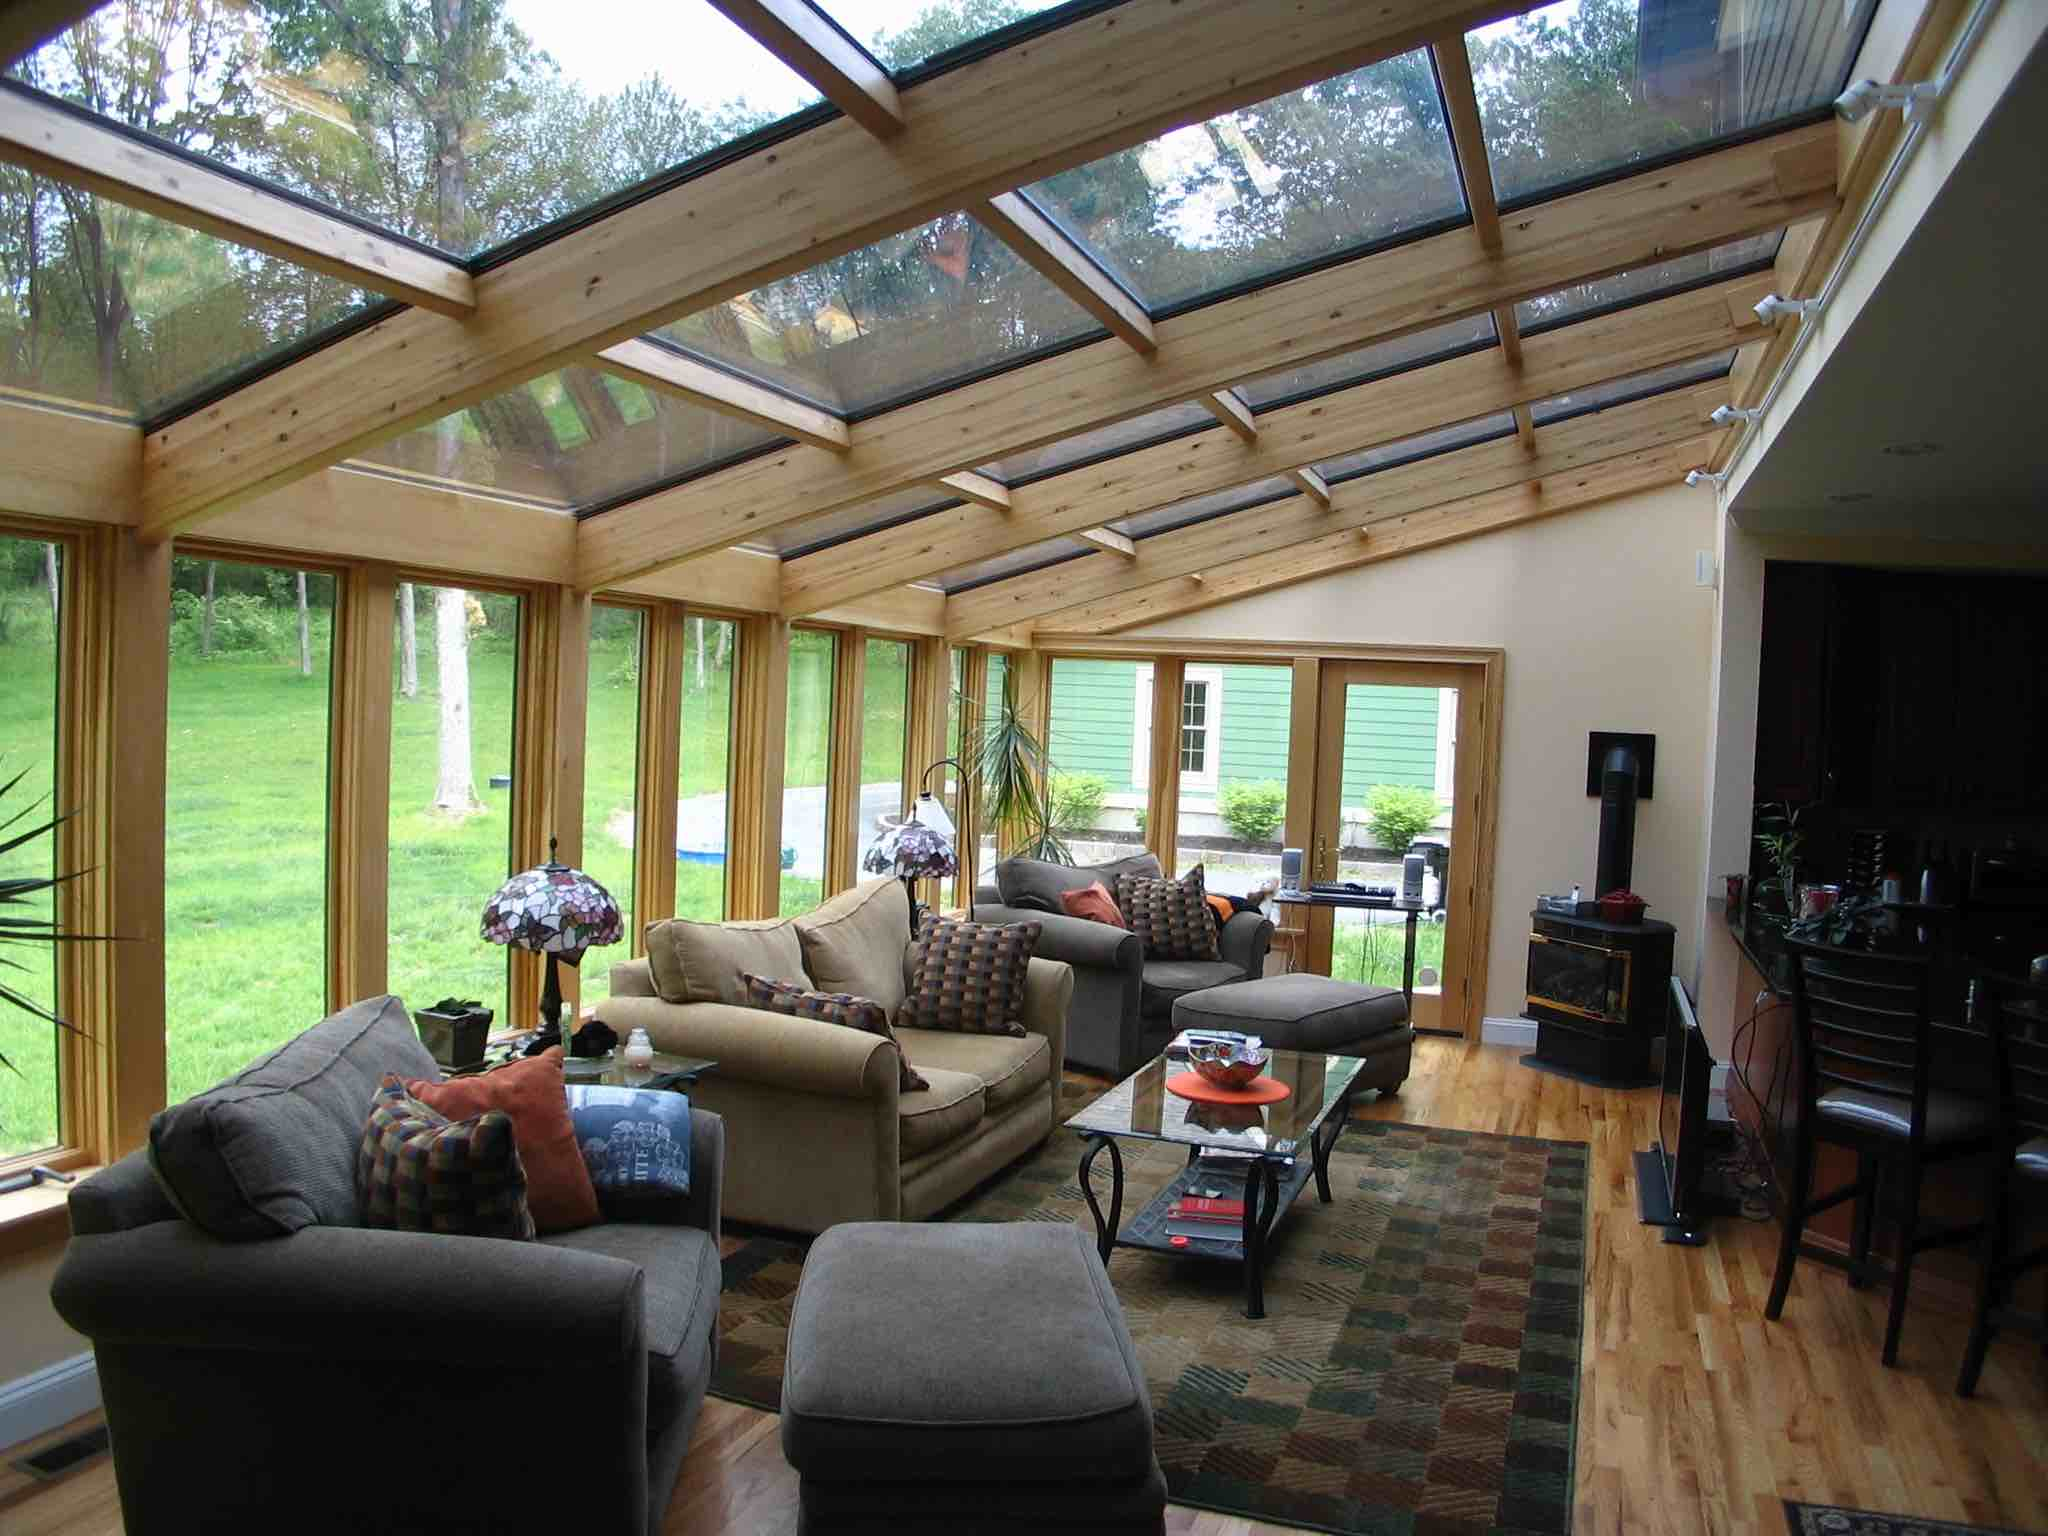 Sunrooms four seasons distributor budget glass nanaimo bc for All season rooms